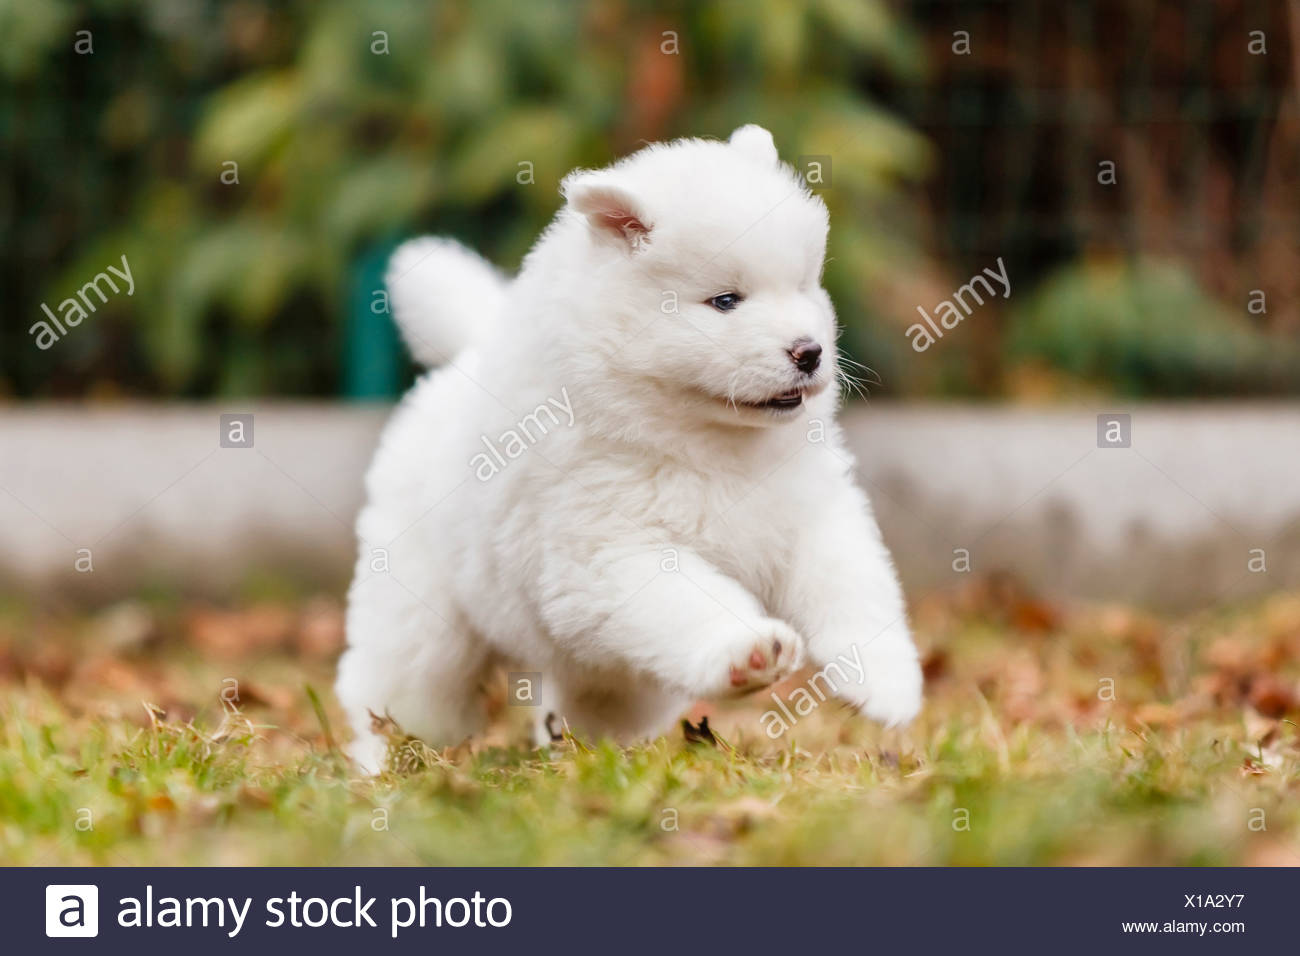 Samoyed Dog Puppy Running Meadow Stock Photo Alamy